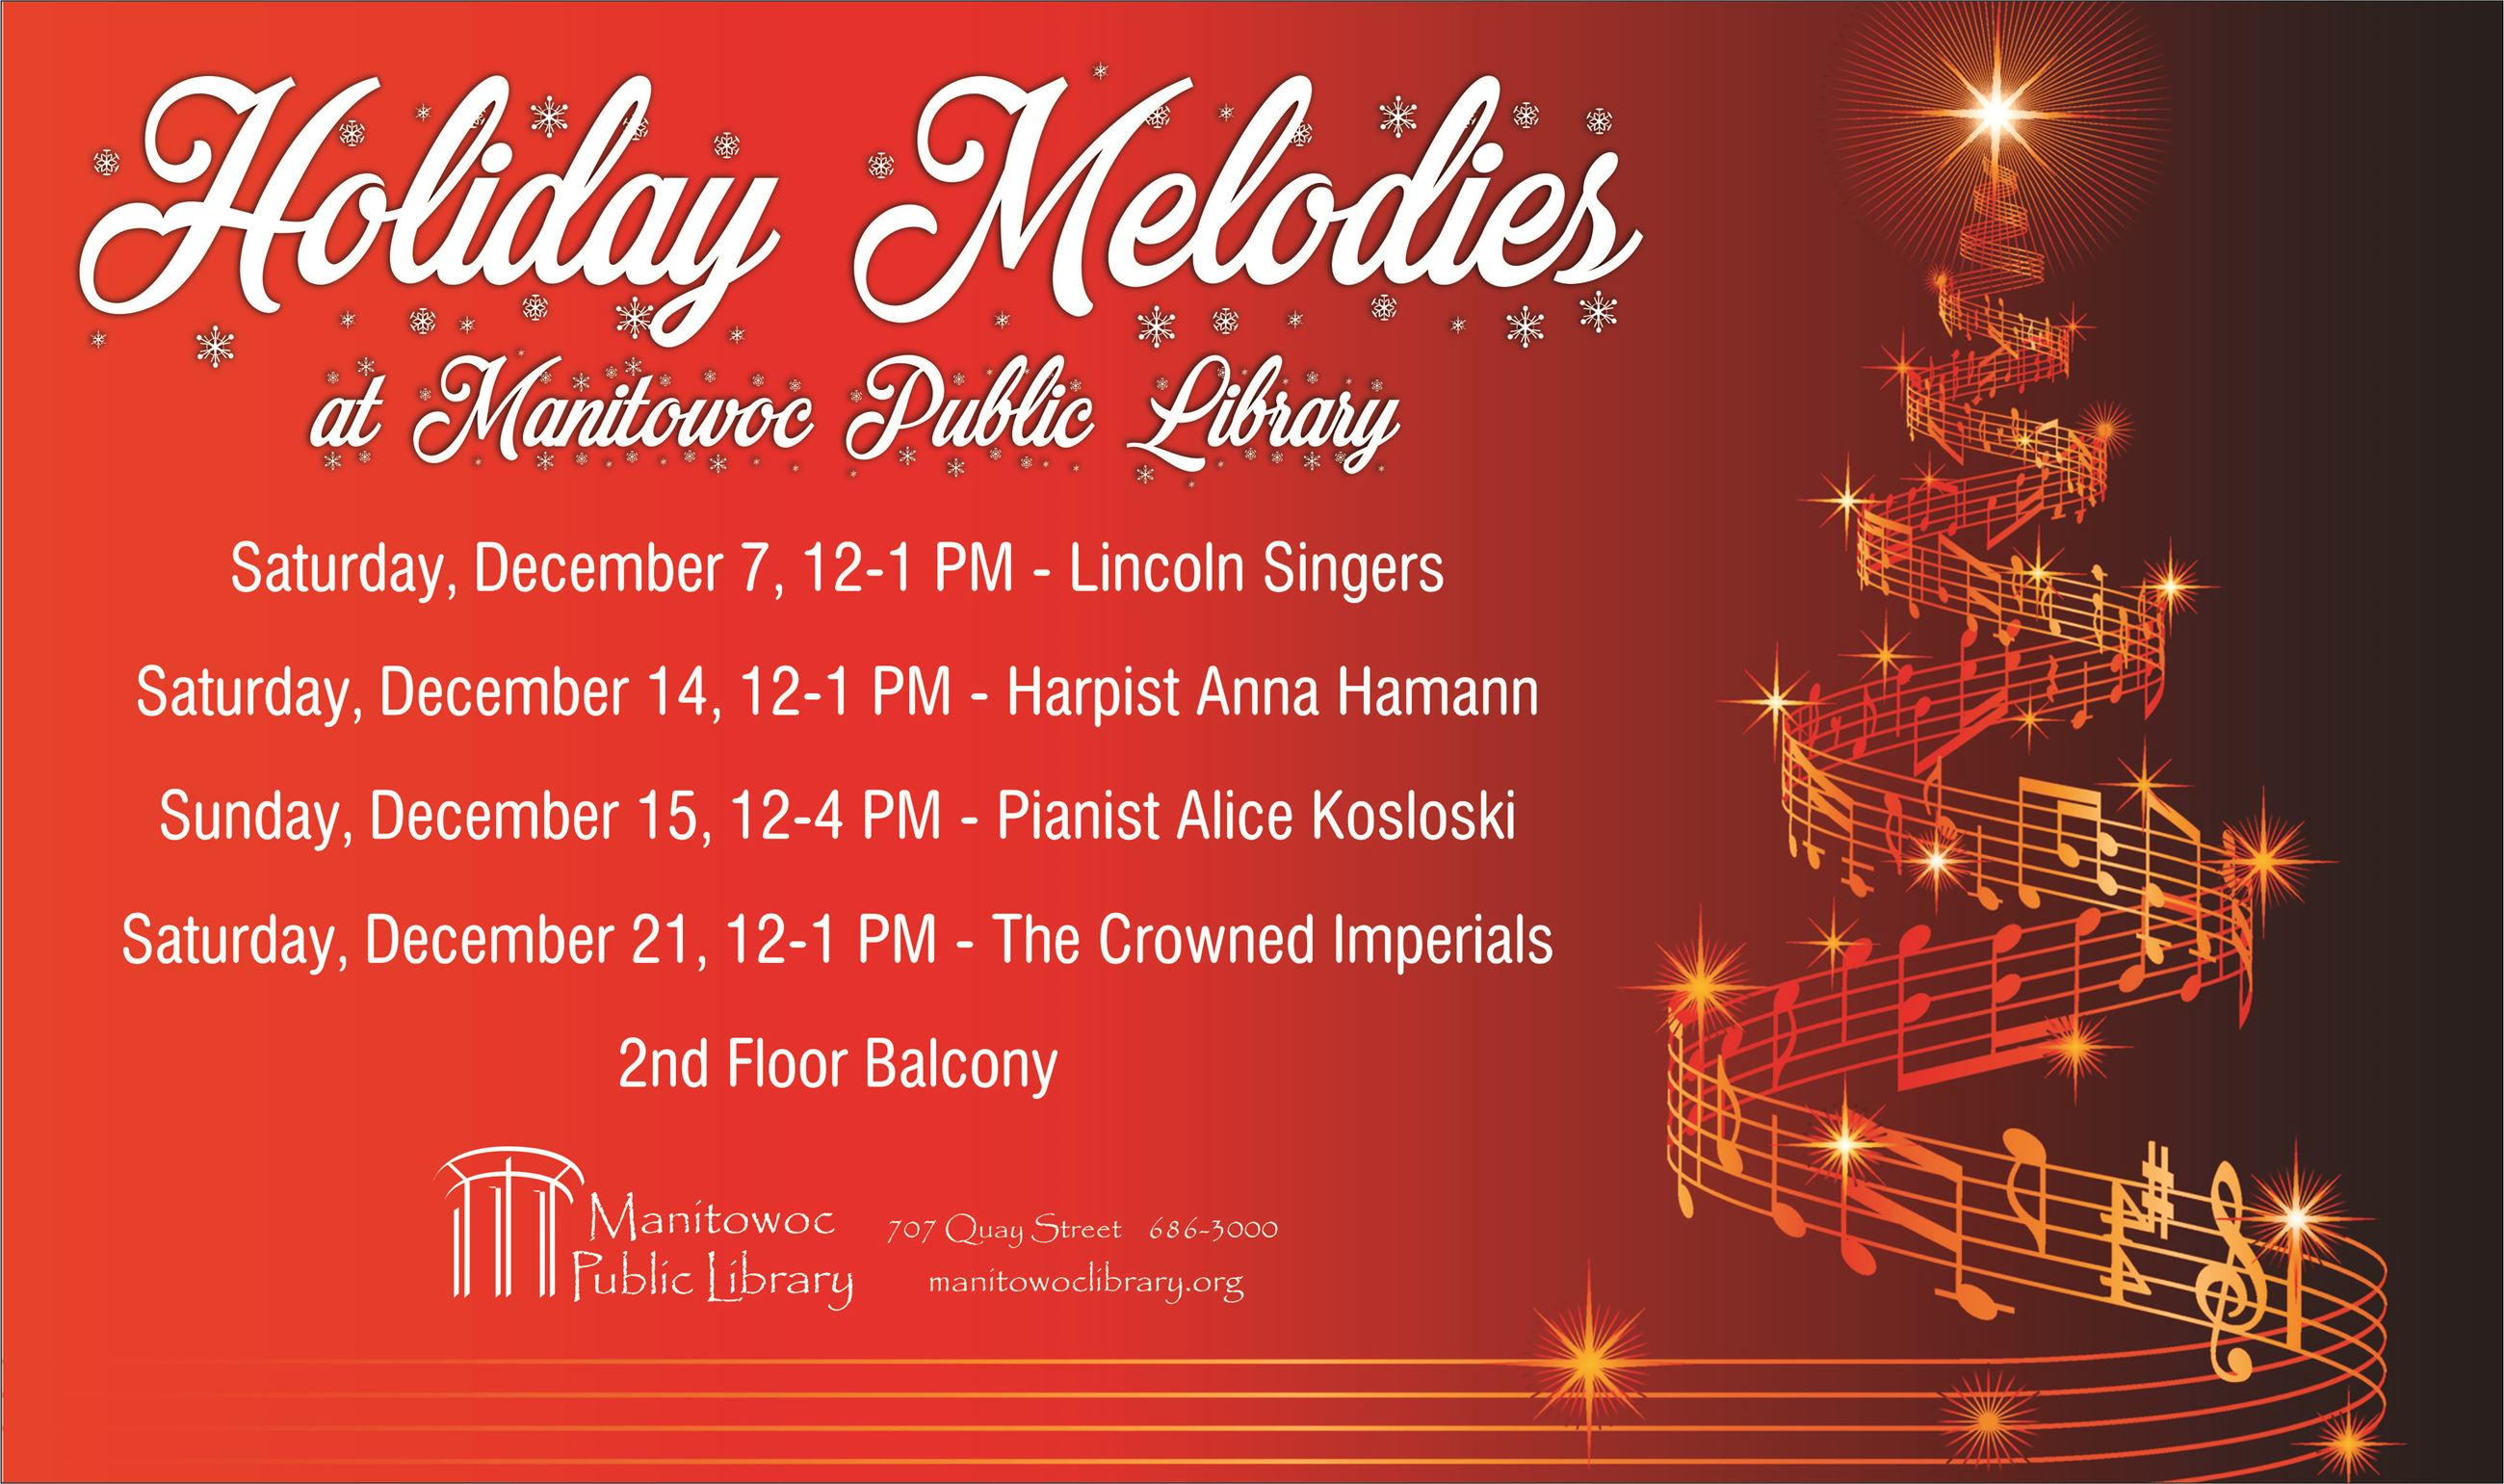 Holiday Melodies Poster